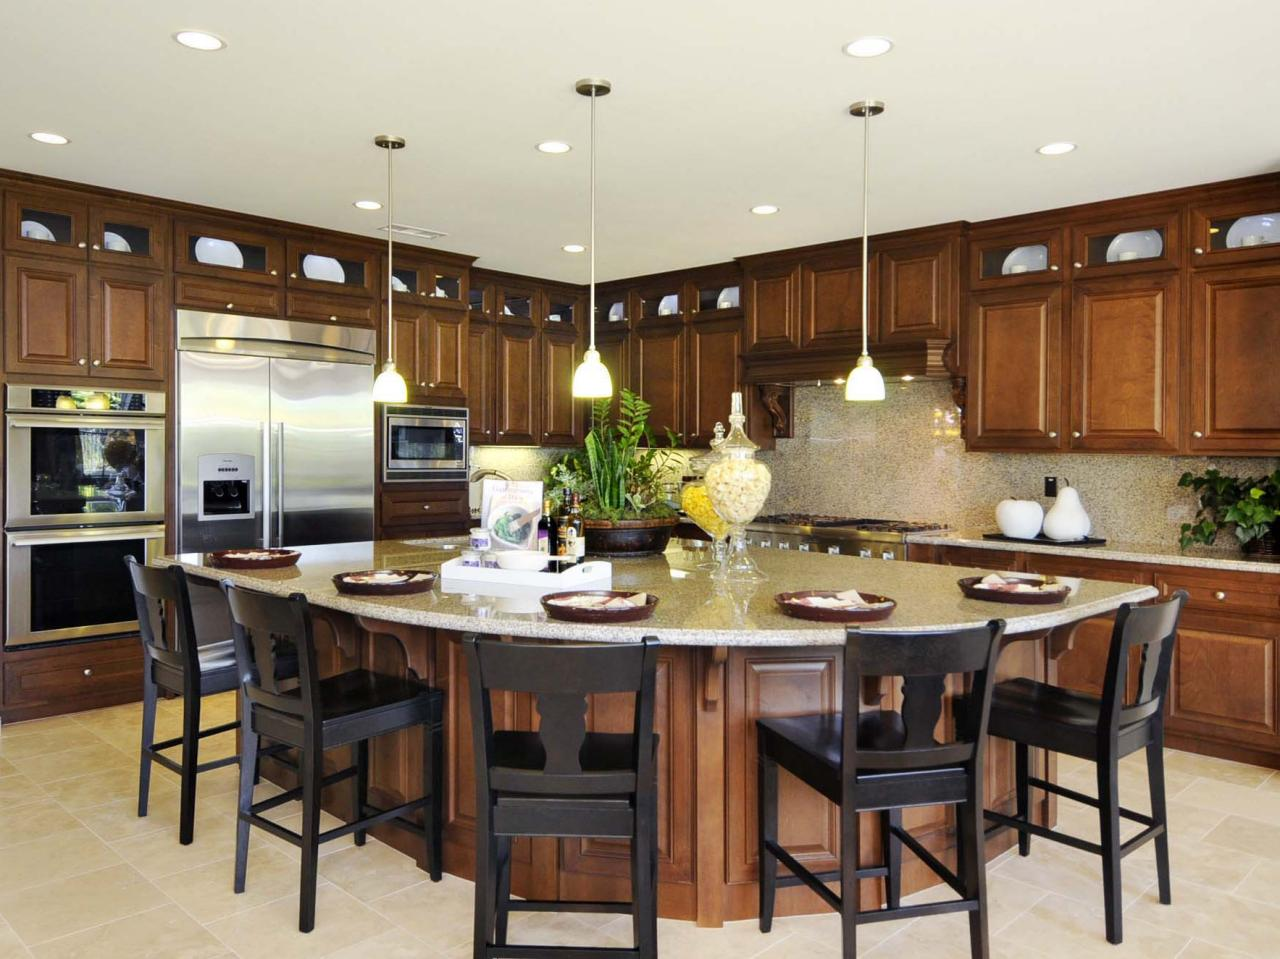 Kitchen Designs With Islands kitchen island design ideas: pictures, options & tips | hgtv